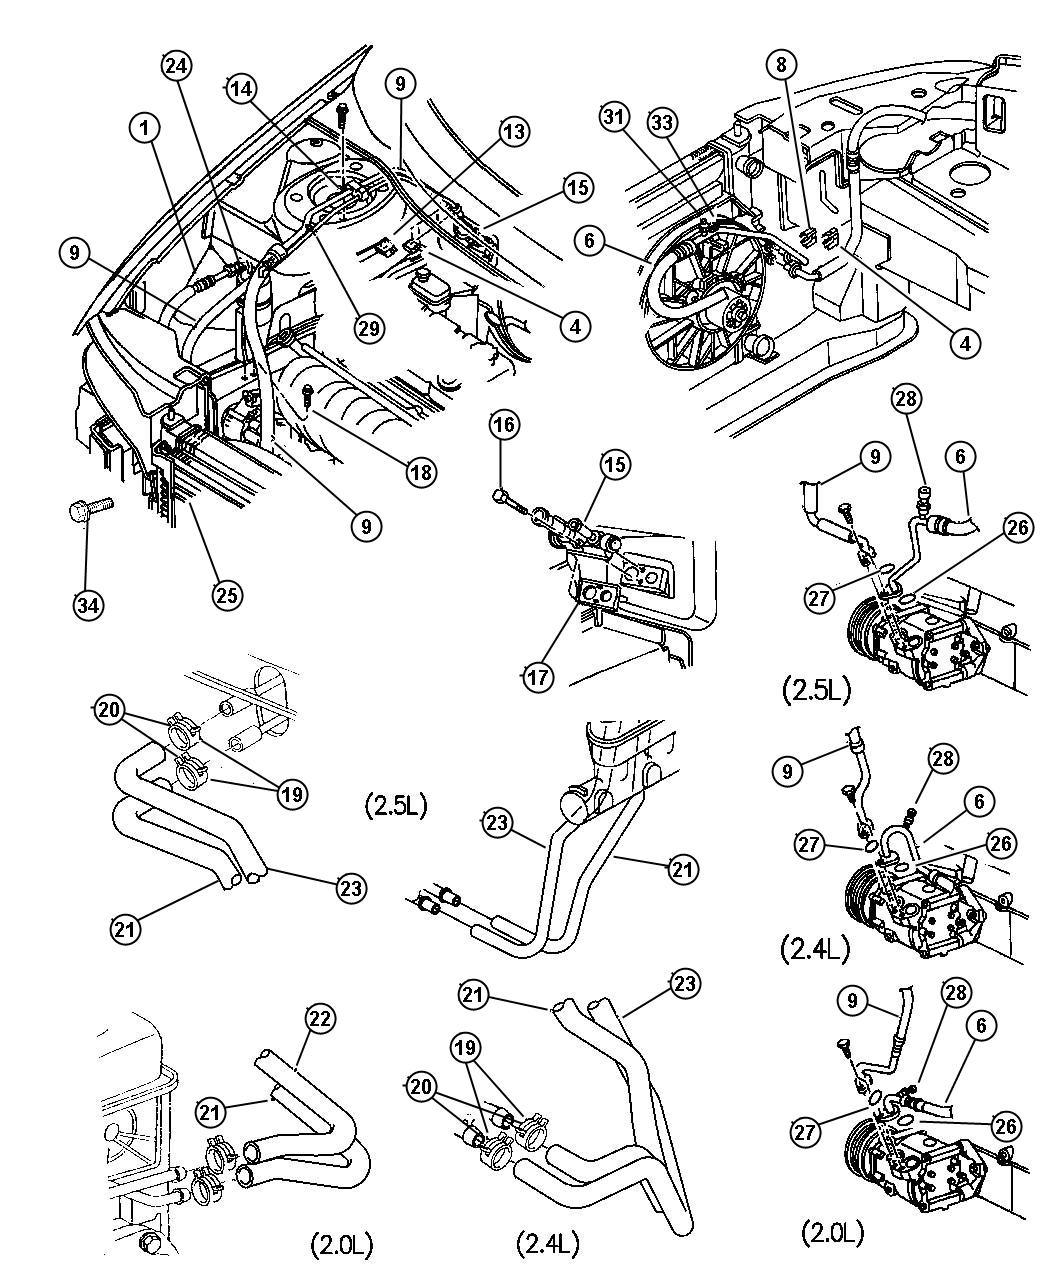 Lexus Es 300 1999 Lexus Es 300 Emissions in addition Mustang Wiring Diagrams also Firing Order Diagram For Ford Ranger L Fixya also P 0996b43f802e2f27 additionally Engine Diagram 1999 Dodge Plymouth. on 2000 dodge neon 2 0 vacuum diagram